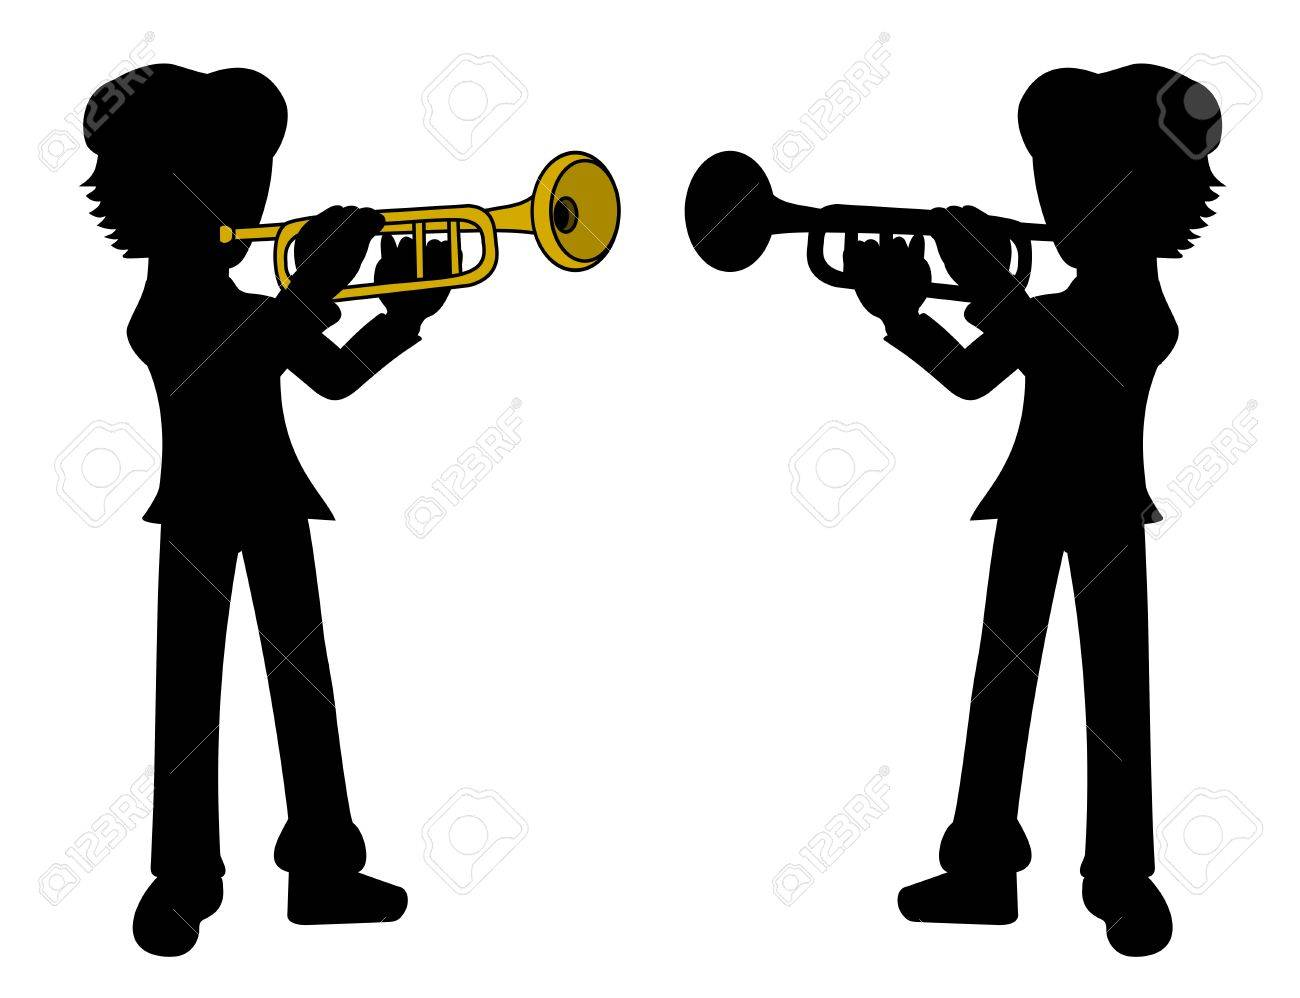 648 Kid With Trumpet Stock Vector Illustration And Royalty Free ...